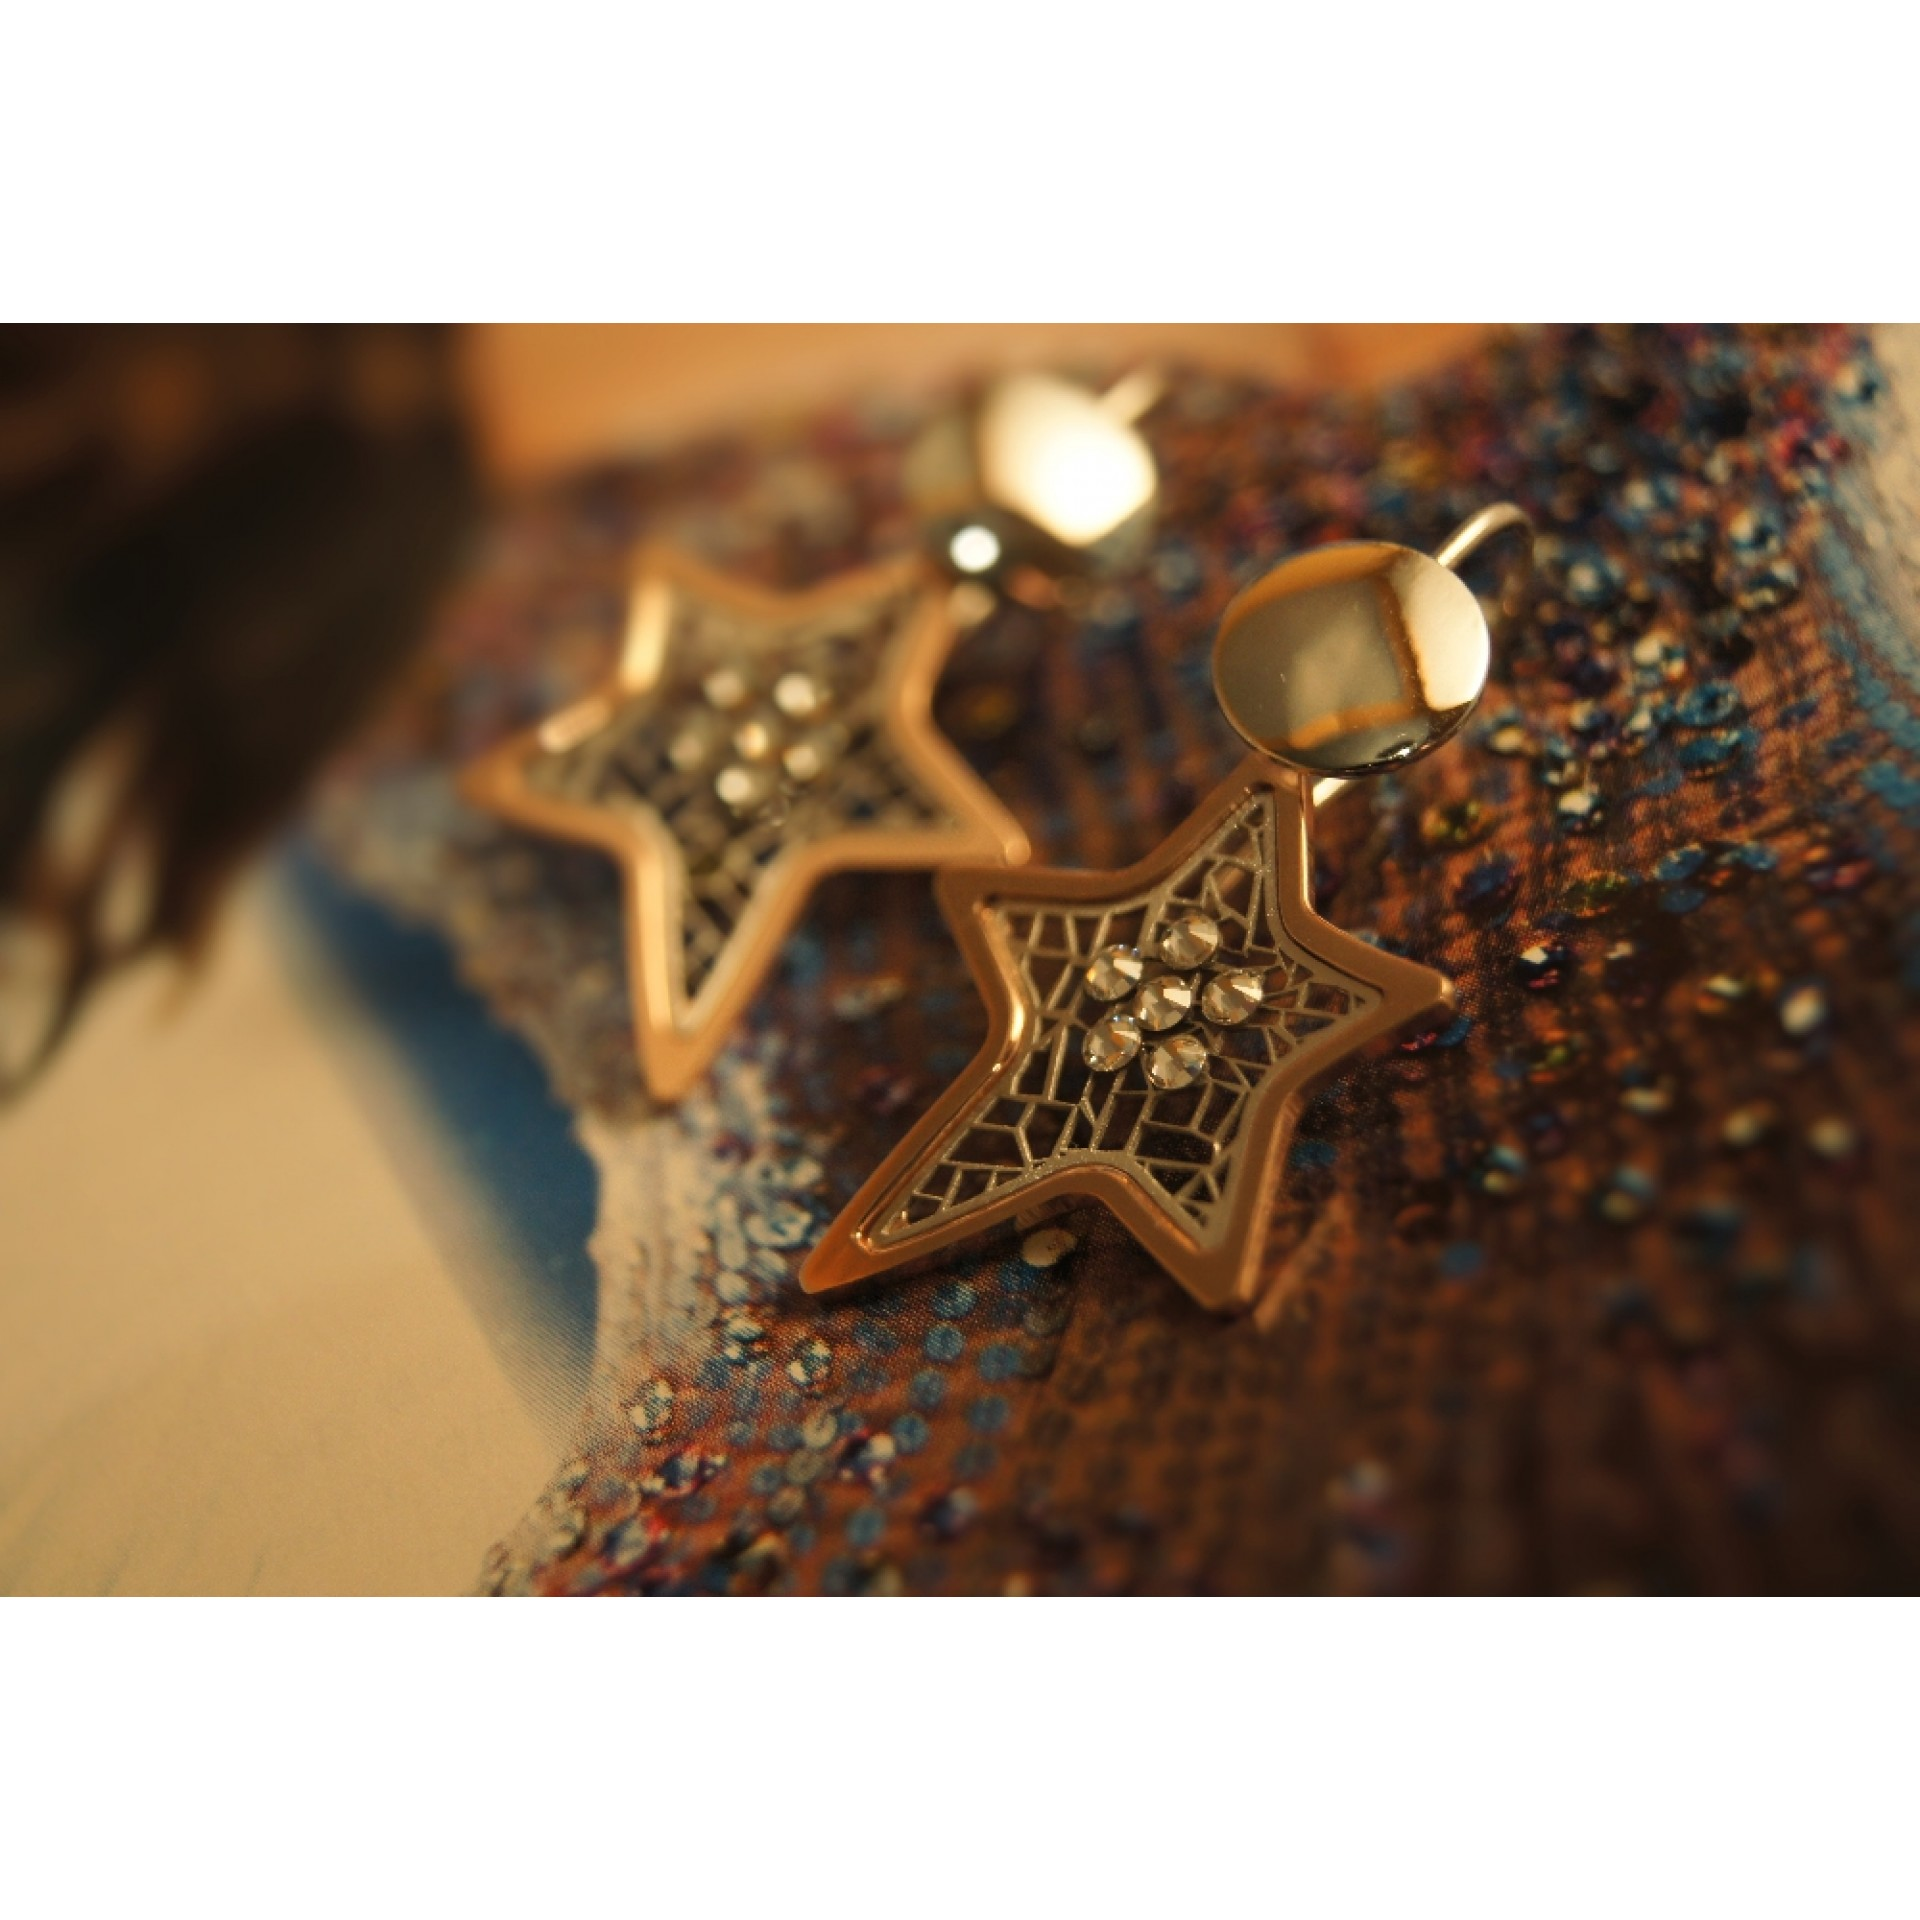 The Star-Addiction in Rose Gold silver earrings